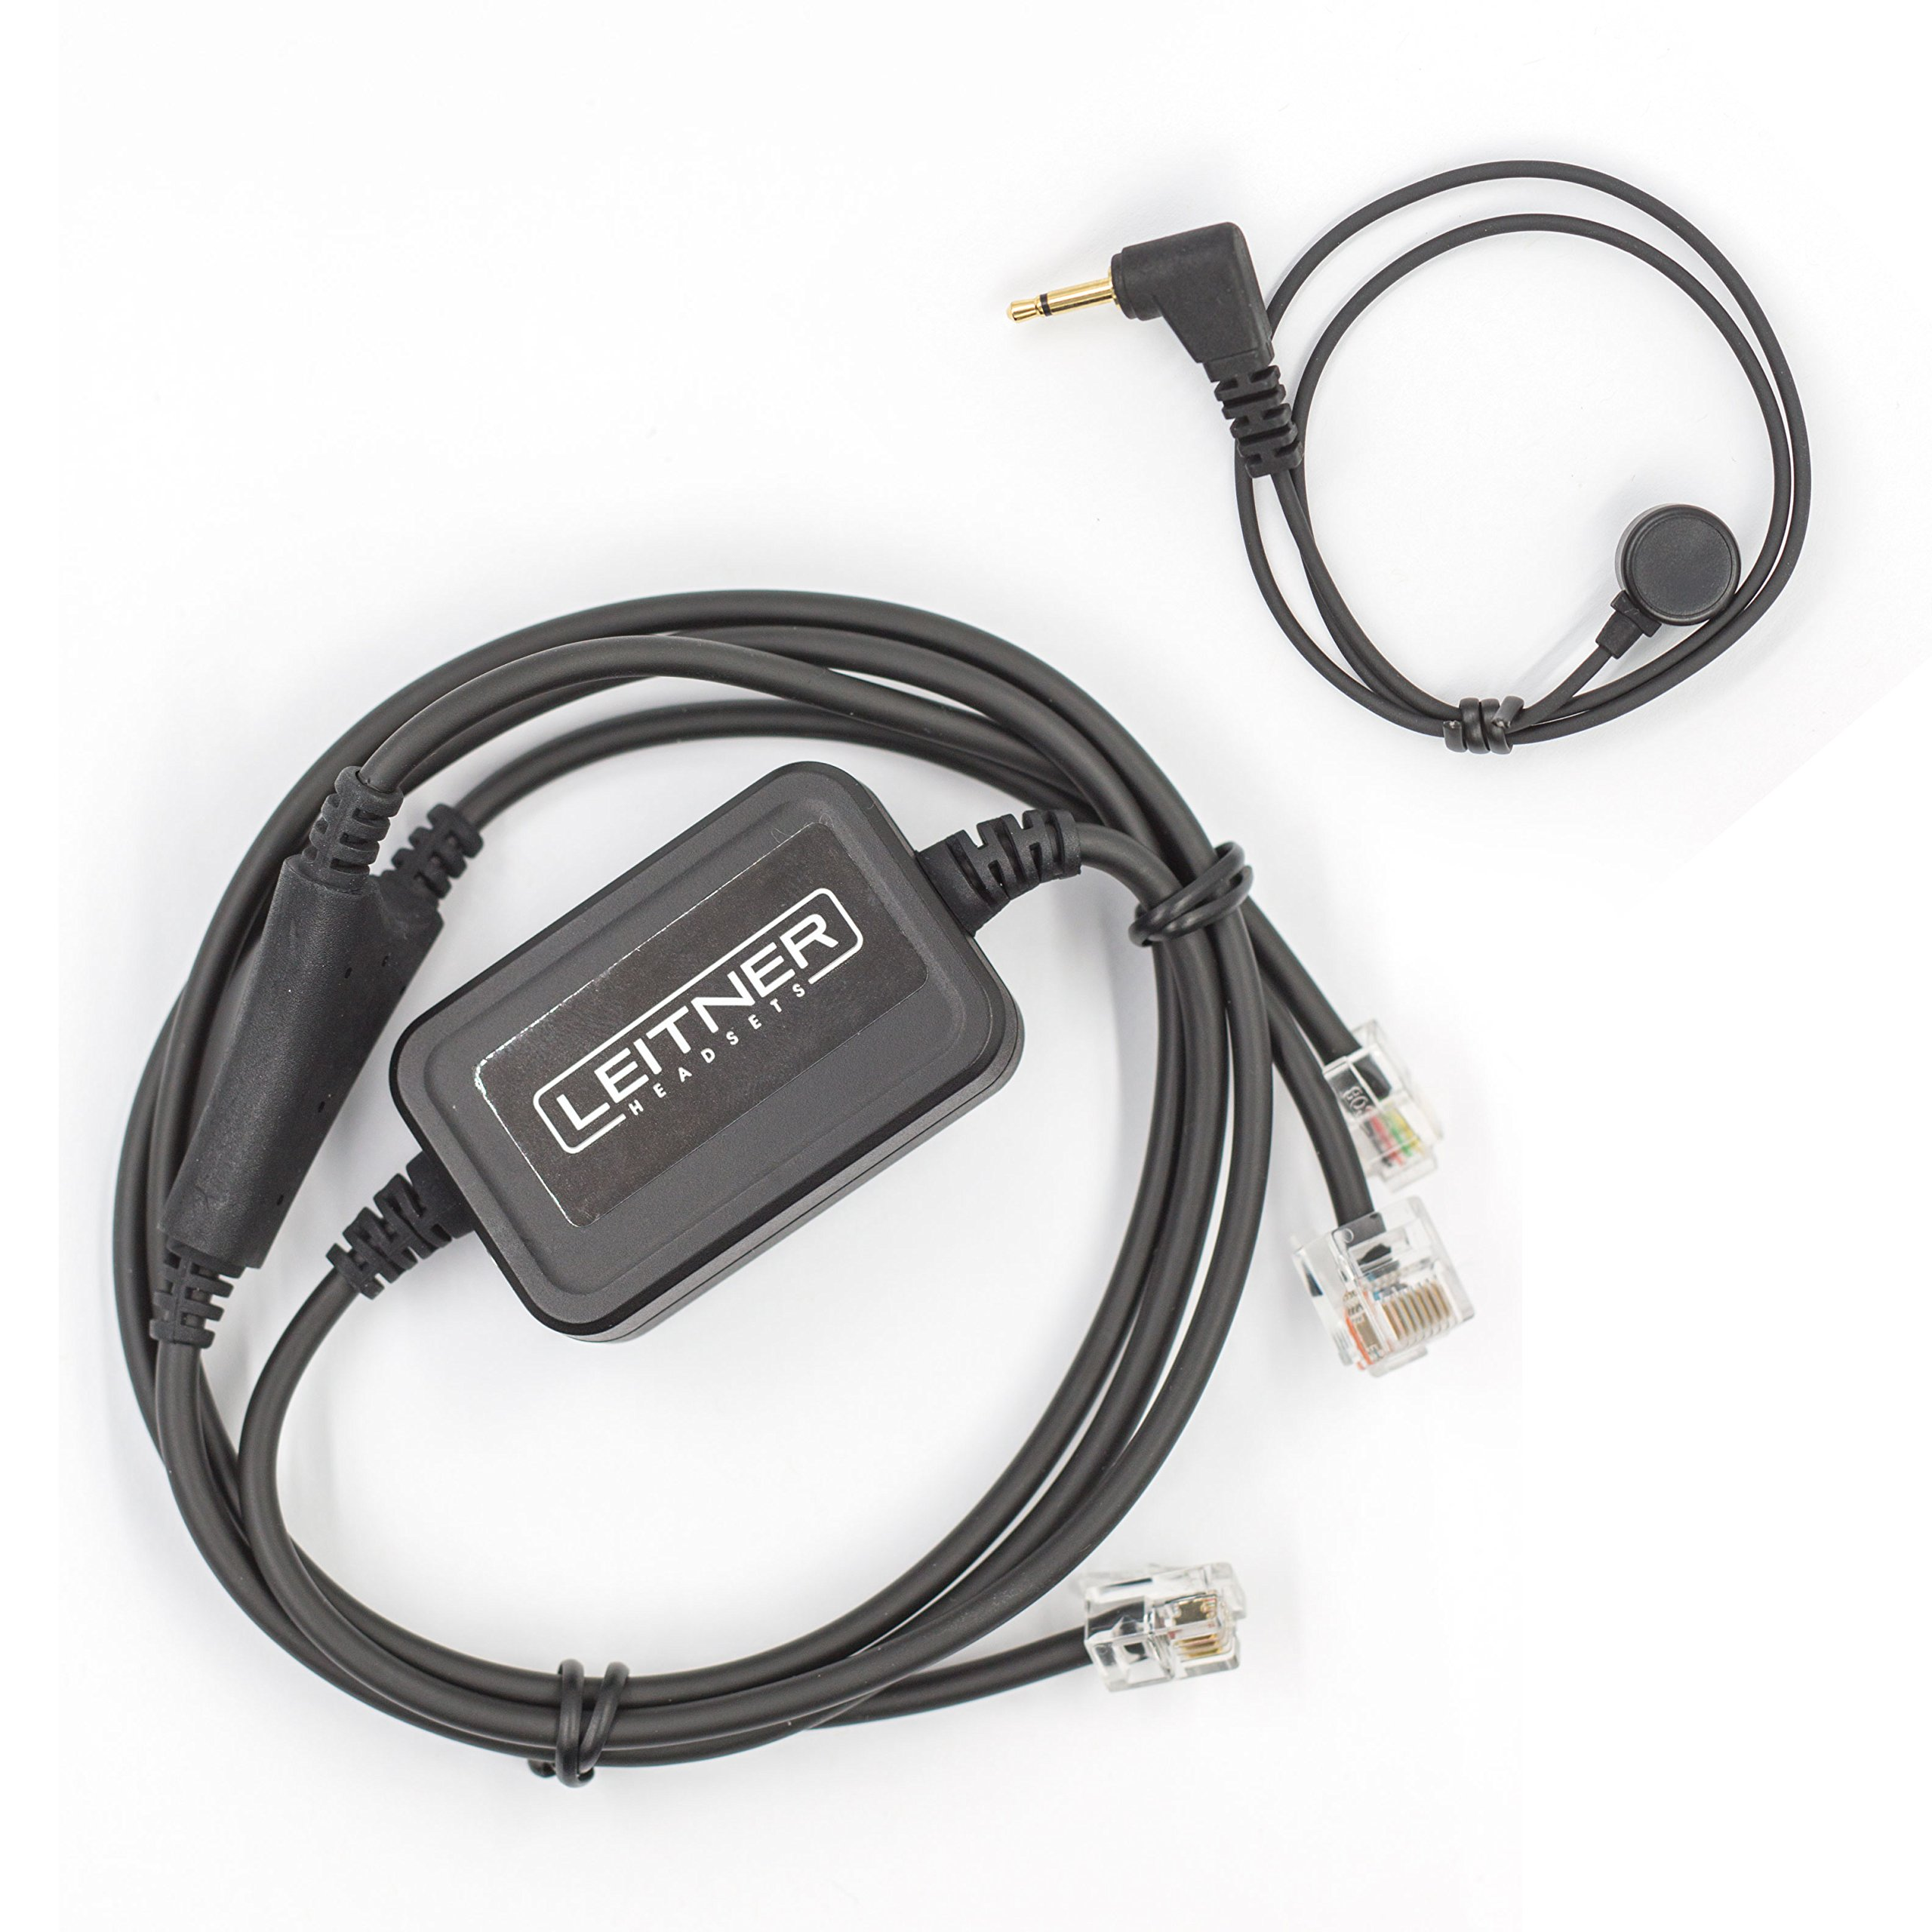 Leitner Electronic Hookswitch for Avaya and ShoreTel Phones. Compatible with LH280, LH170, LH270, LH275 Leitner Wireless Office Headsets